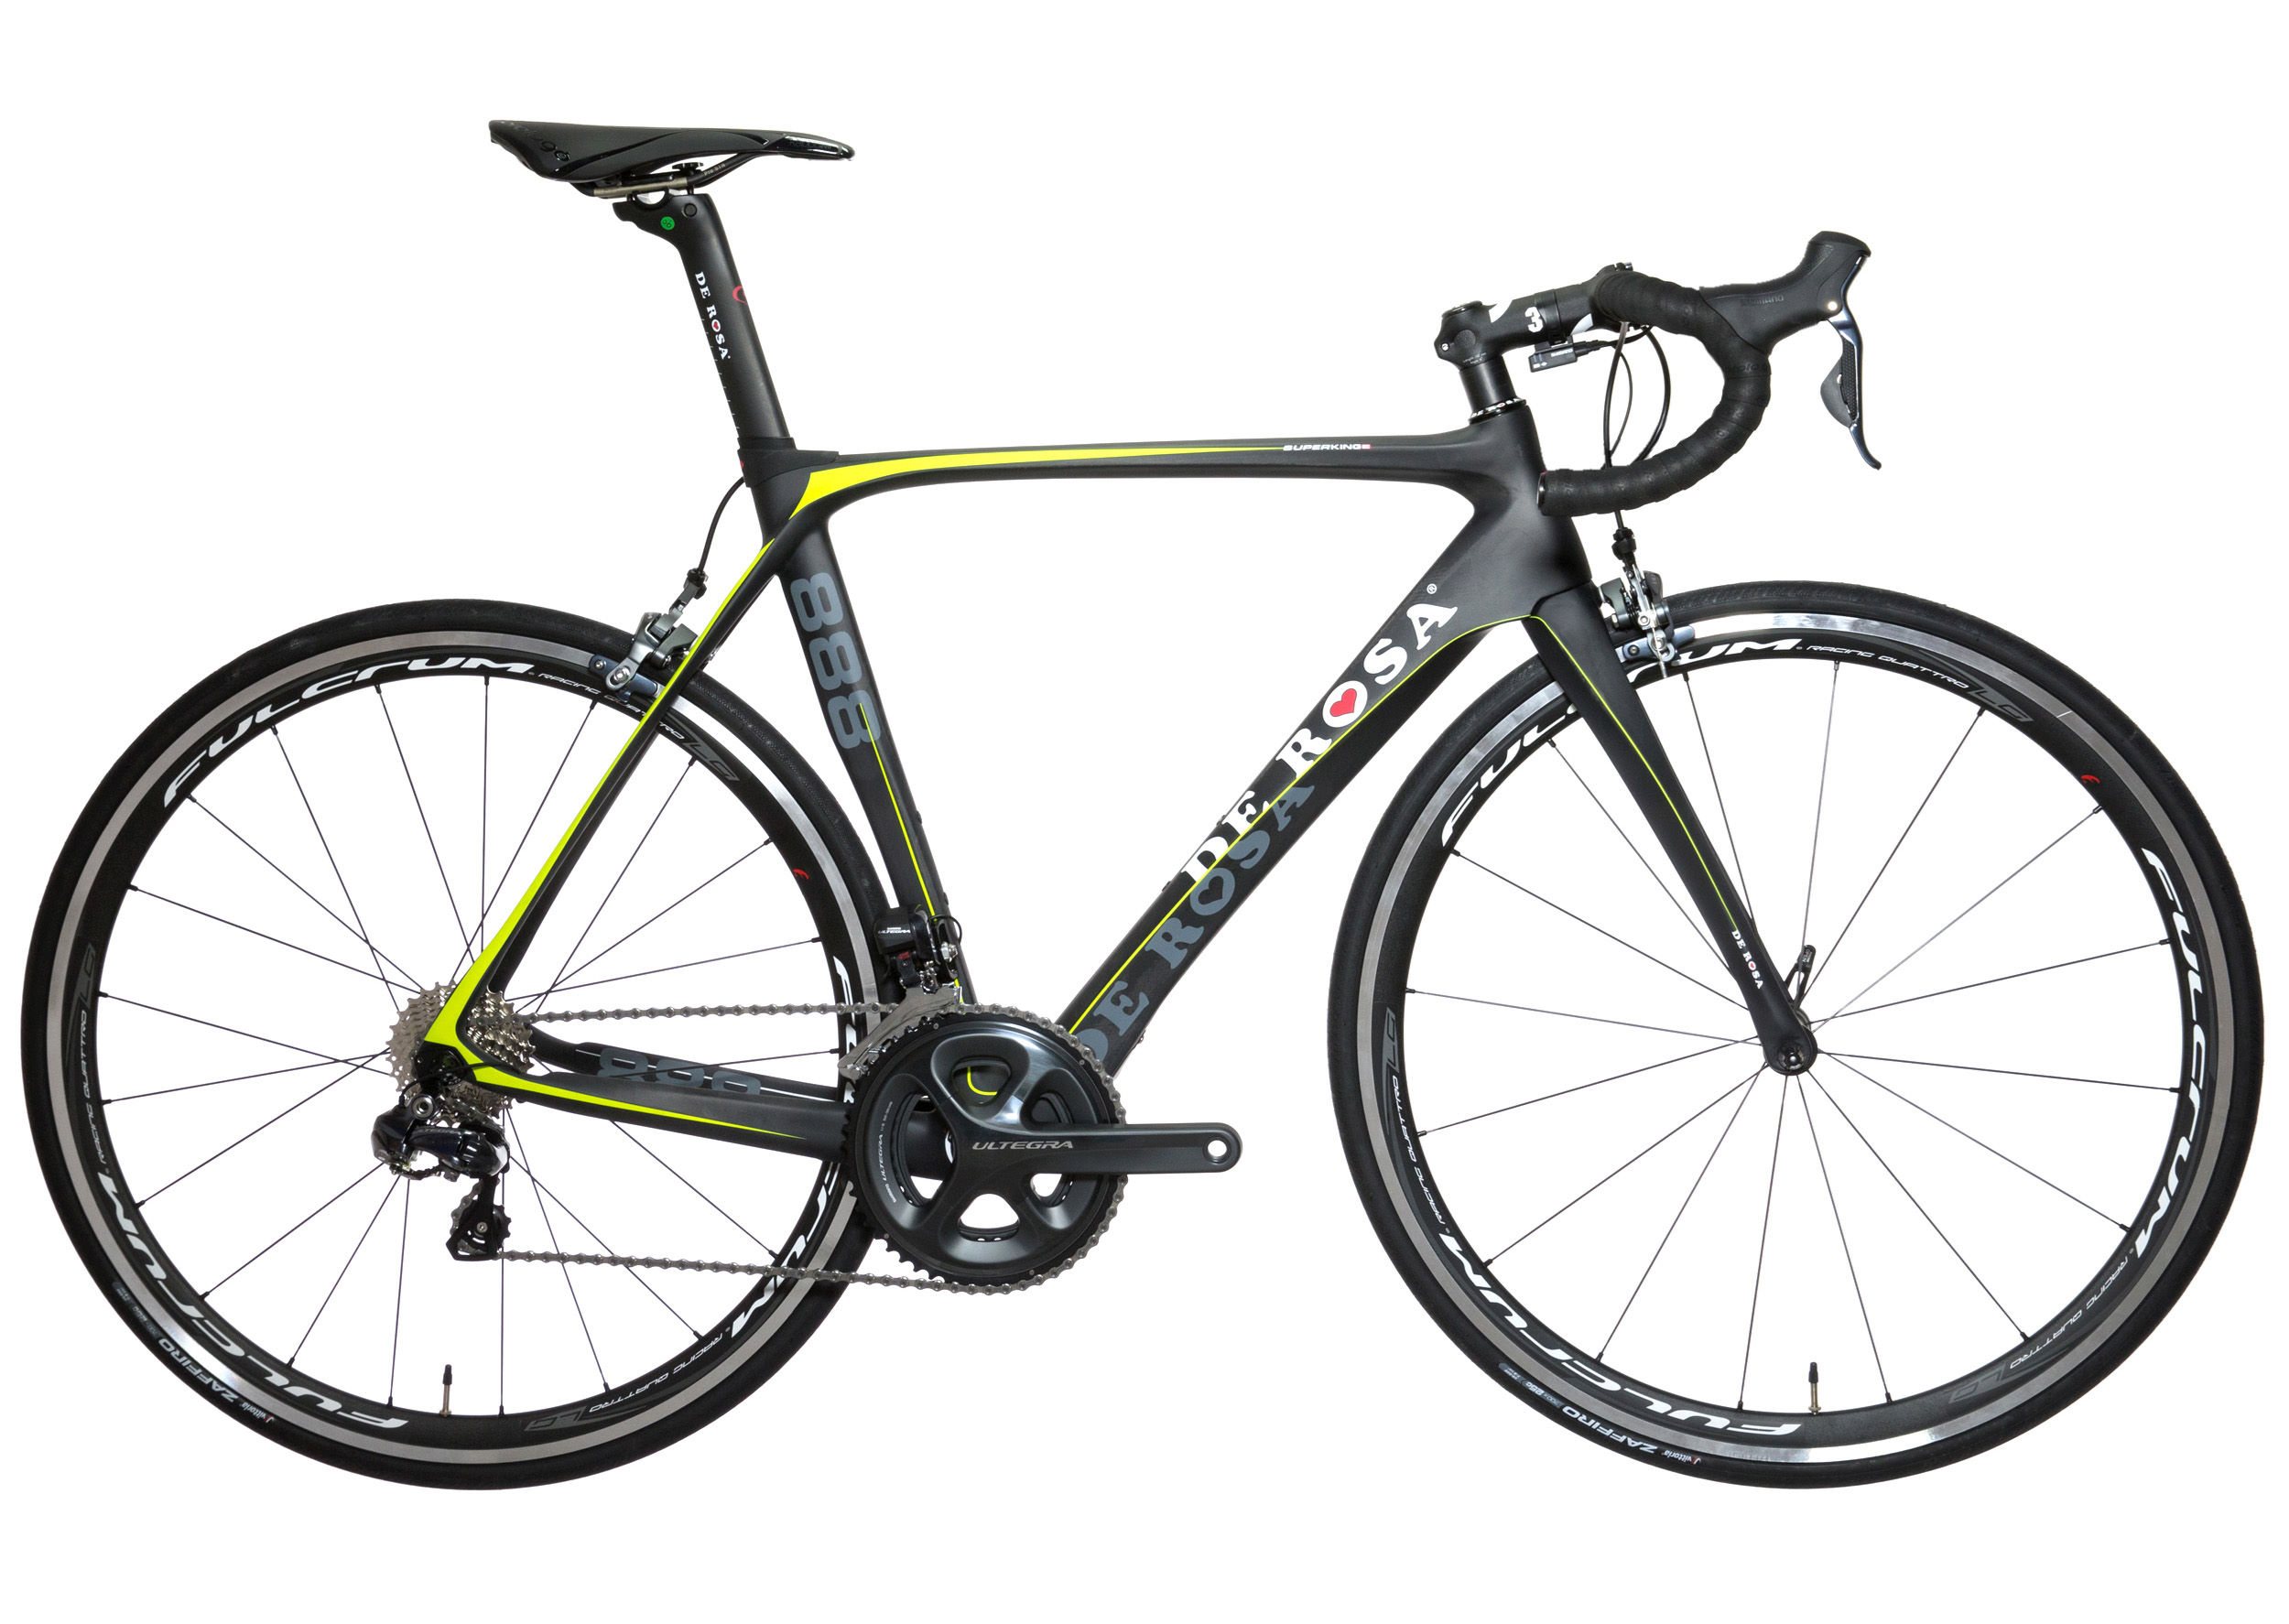 De Rosa SuperKing 888 105 2014 Road Bike Road Bikes Black Yellow 2014 DERSUPERK580RQBLKY46?w=2000&h=2000&a=7 wiggle de rosa superking 888 (ultegra di2 2015) road bike  at bayanpartner.co